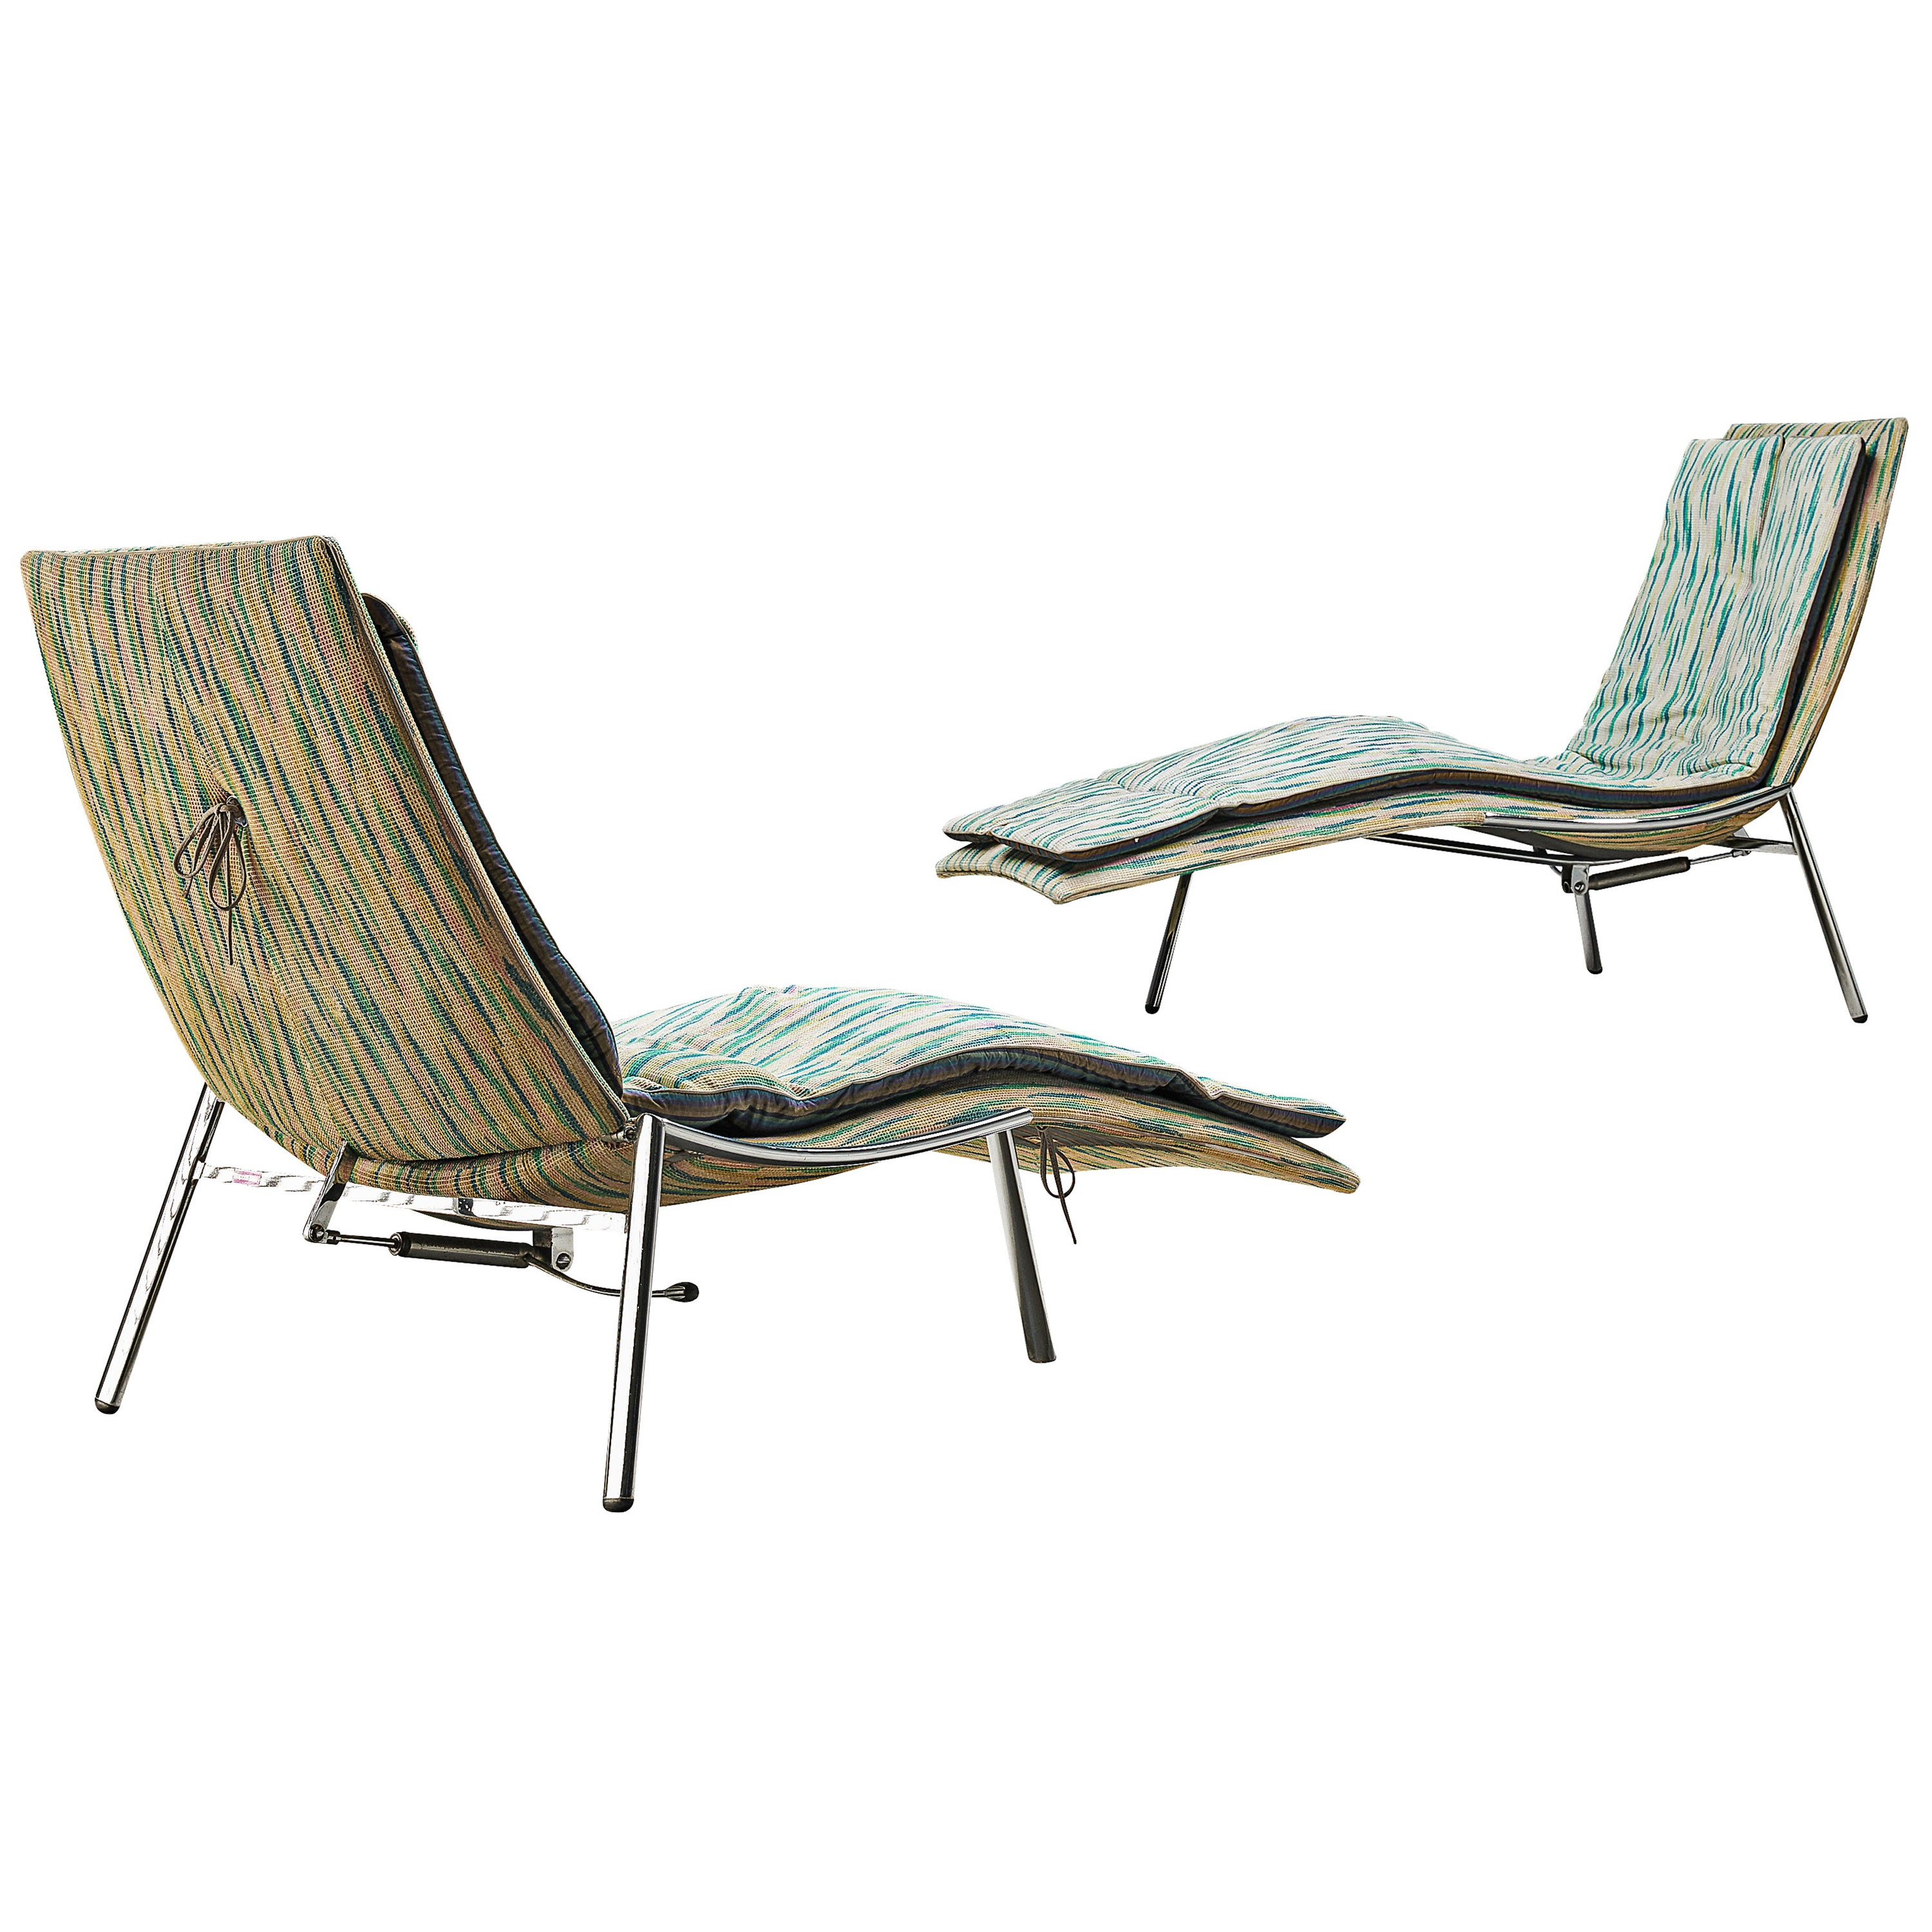 Chaise Longues by Giovanni Offredi for Saporiti